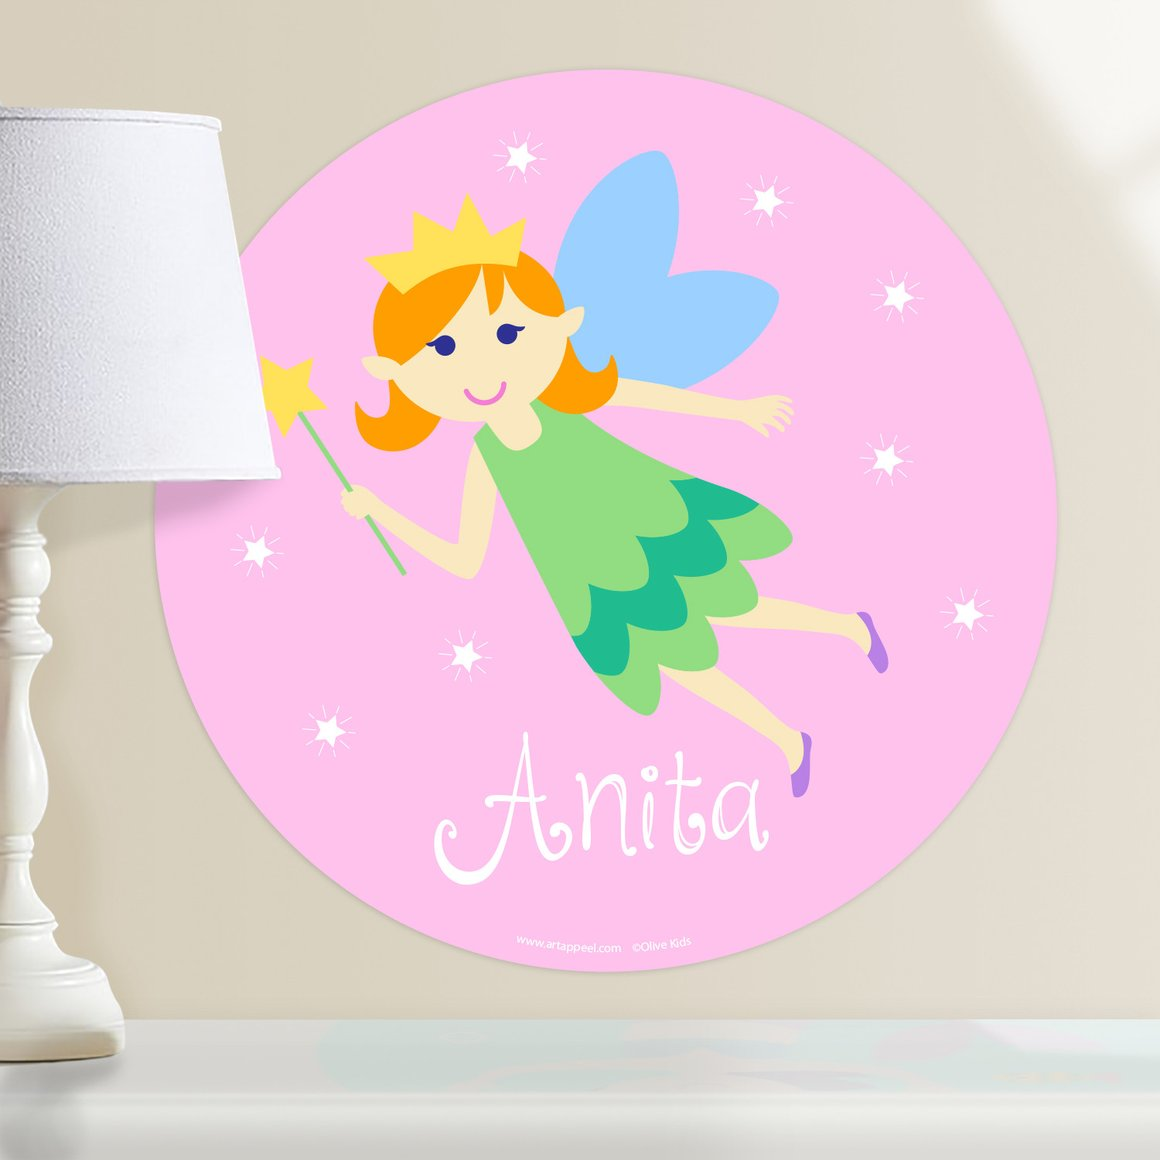 Fairy Princess (Light Skin, Red Hair) Personalized Kids Wall Dotz Decal